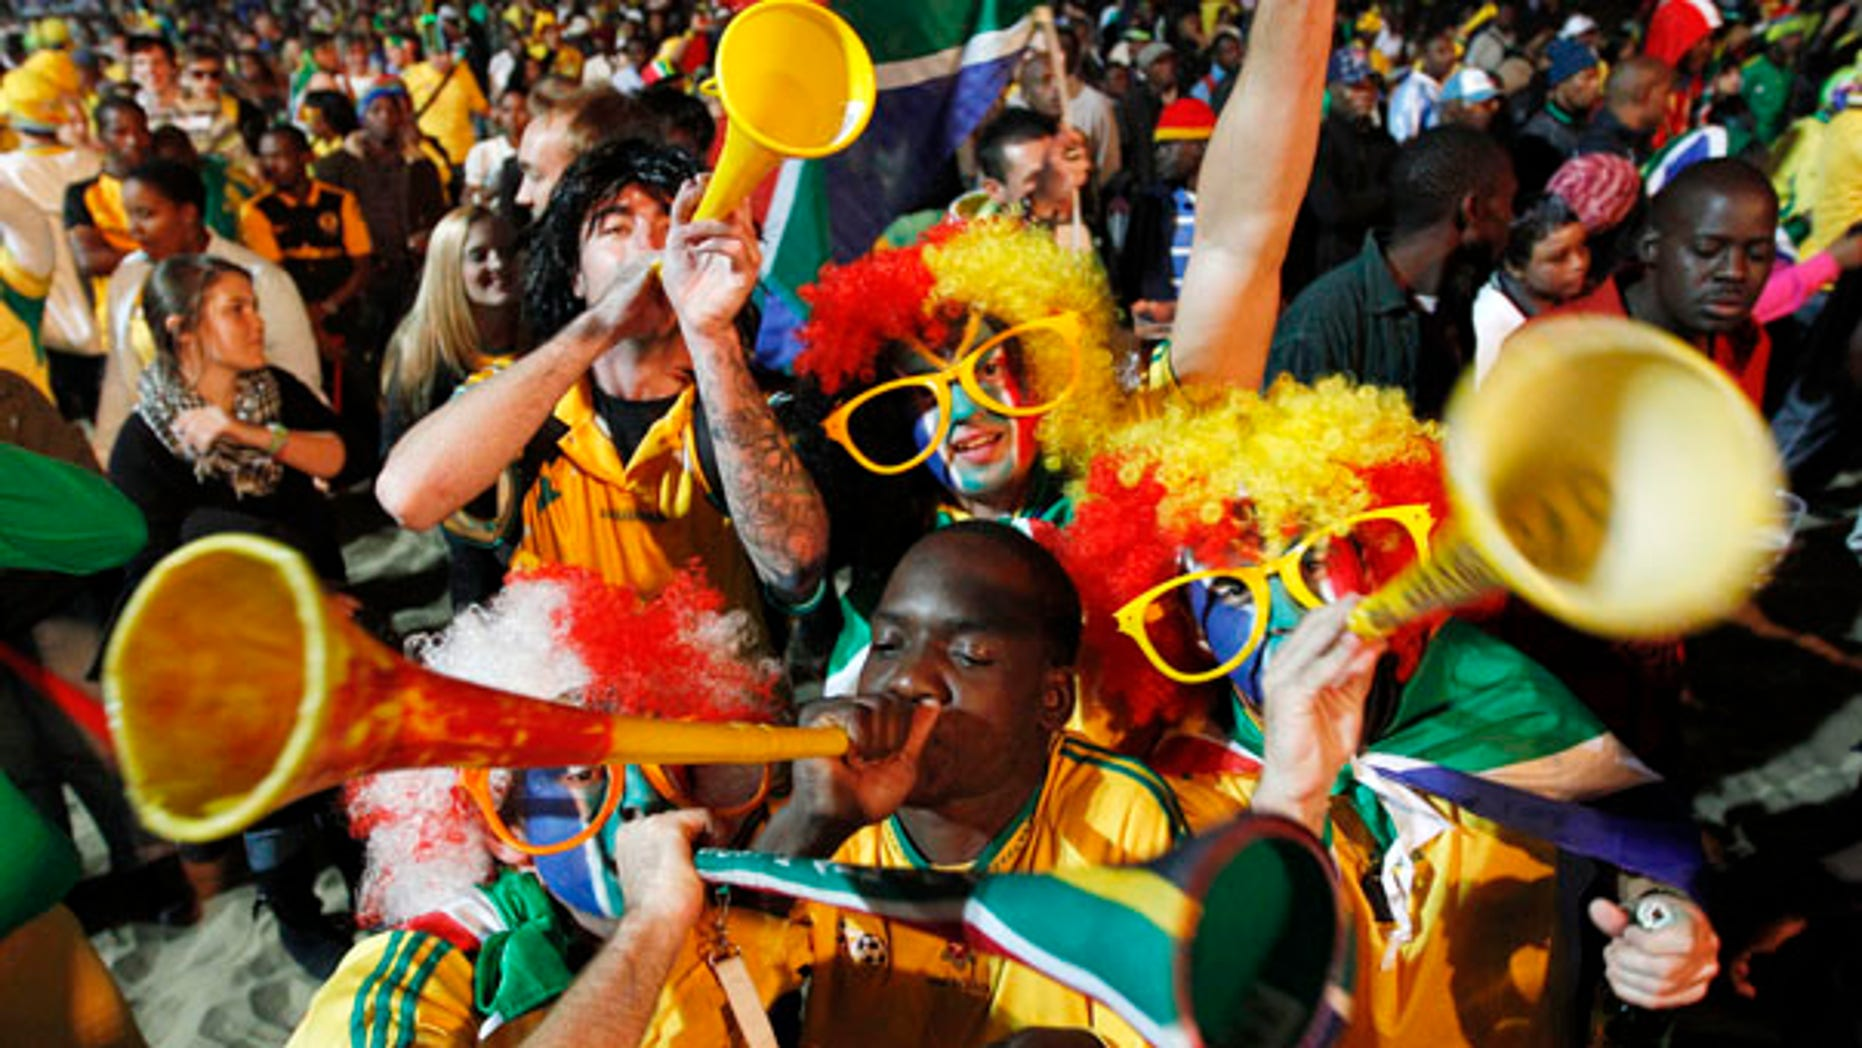 June 16: South African fans blow their vuvuzelas as they cheers at a beach in Durban, South Africa prior to the World Cup soccer match between South Africa and Uruguay.